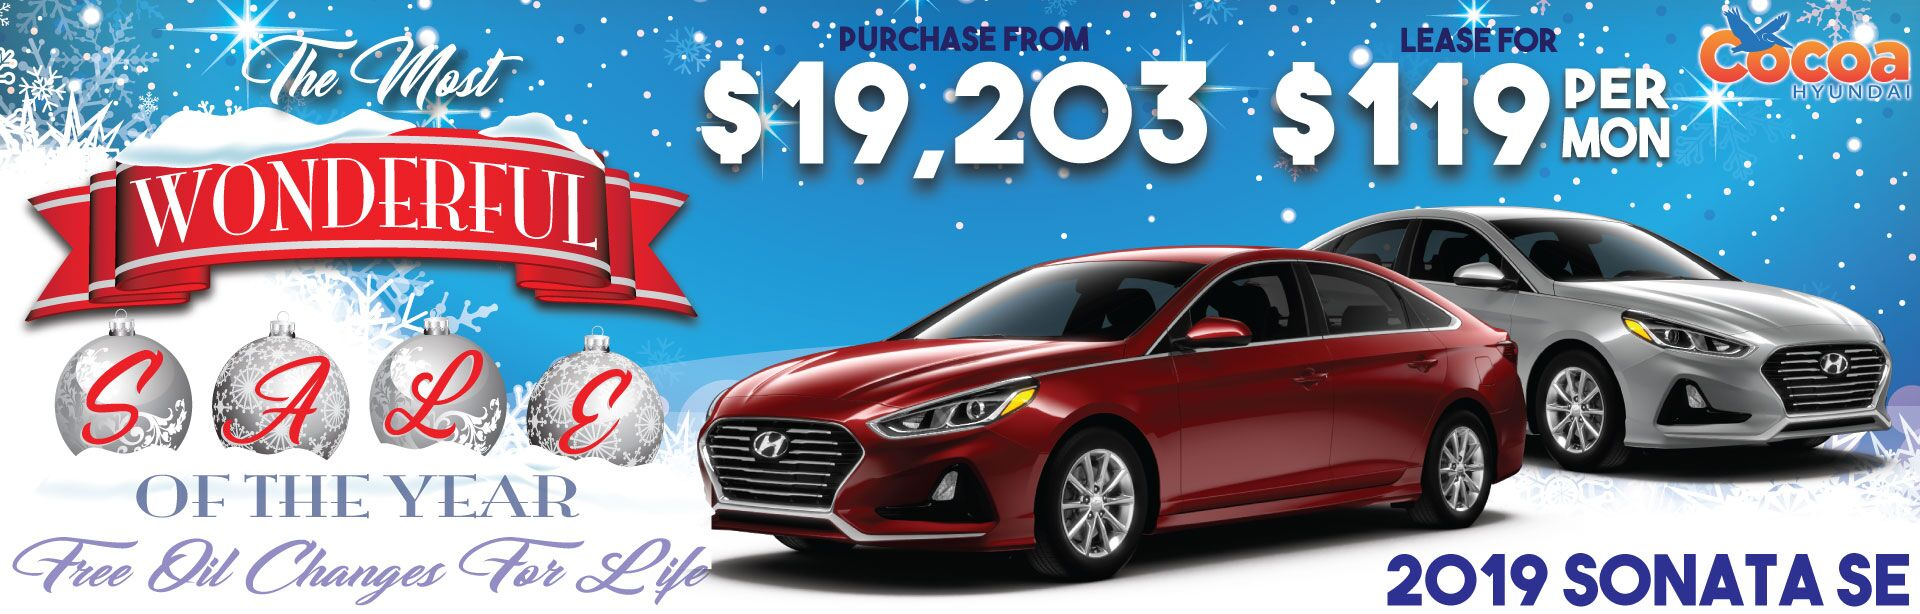 2019 Sonata Winter Sale